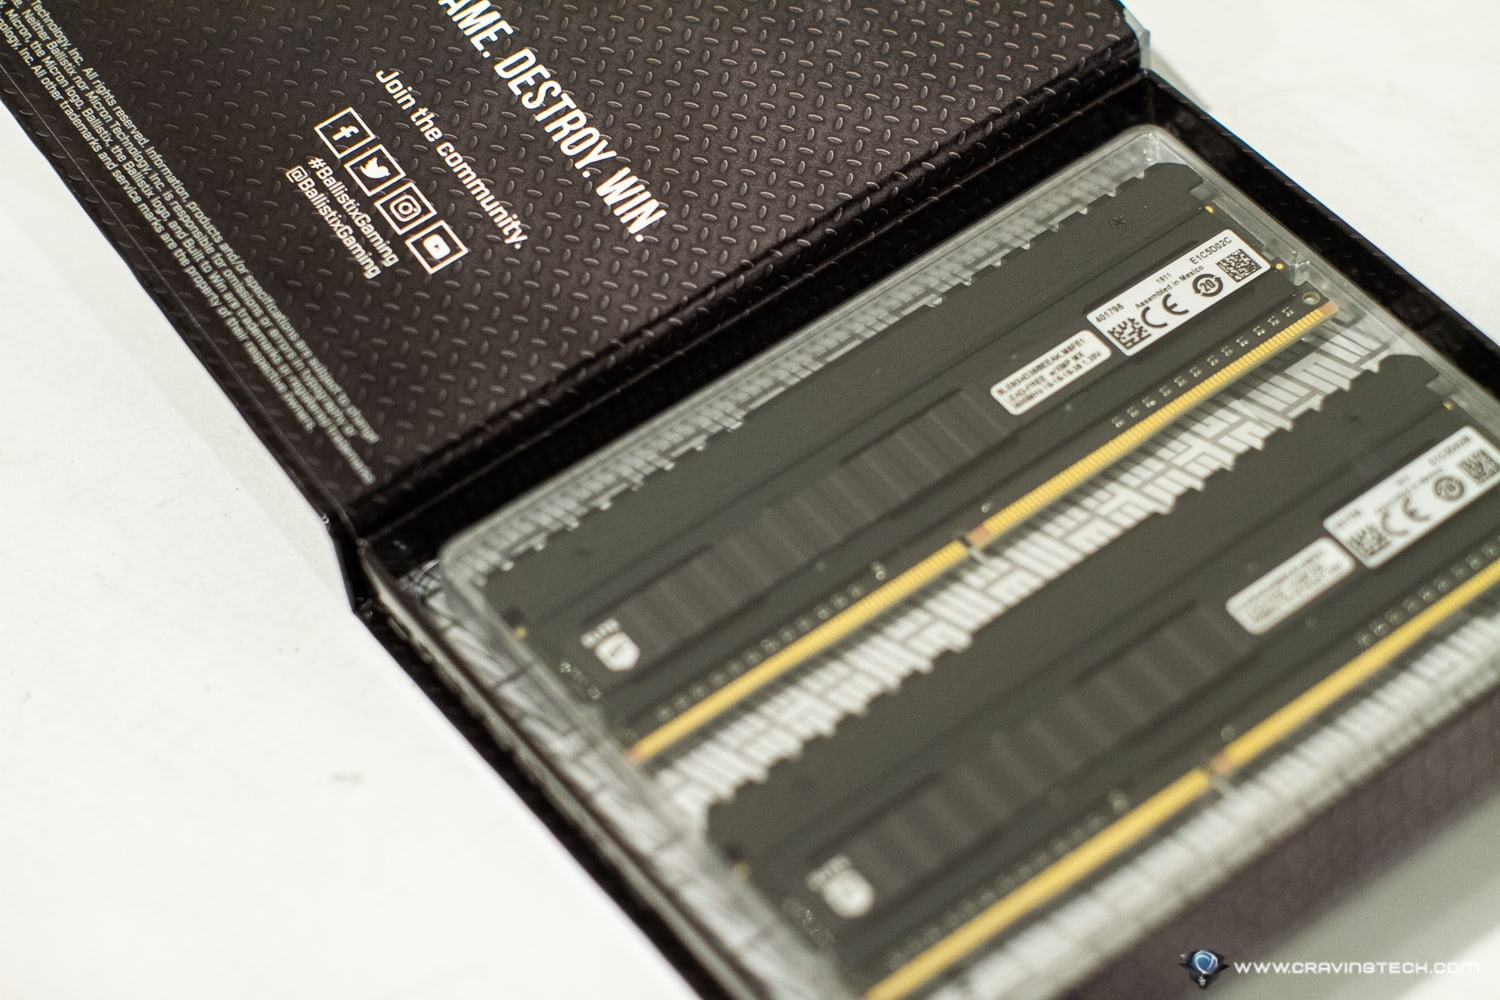 Crucial Ballistix Elite DDR4 PC3600